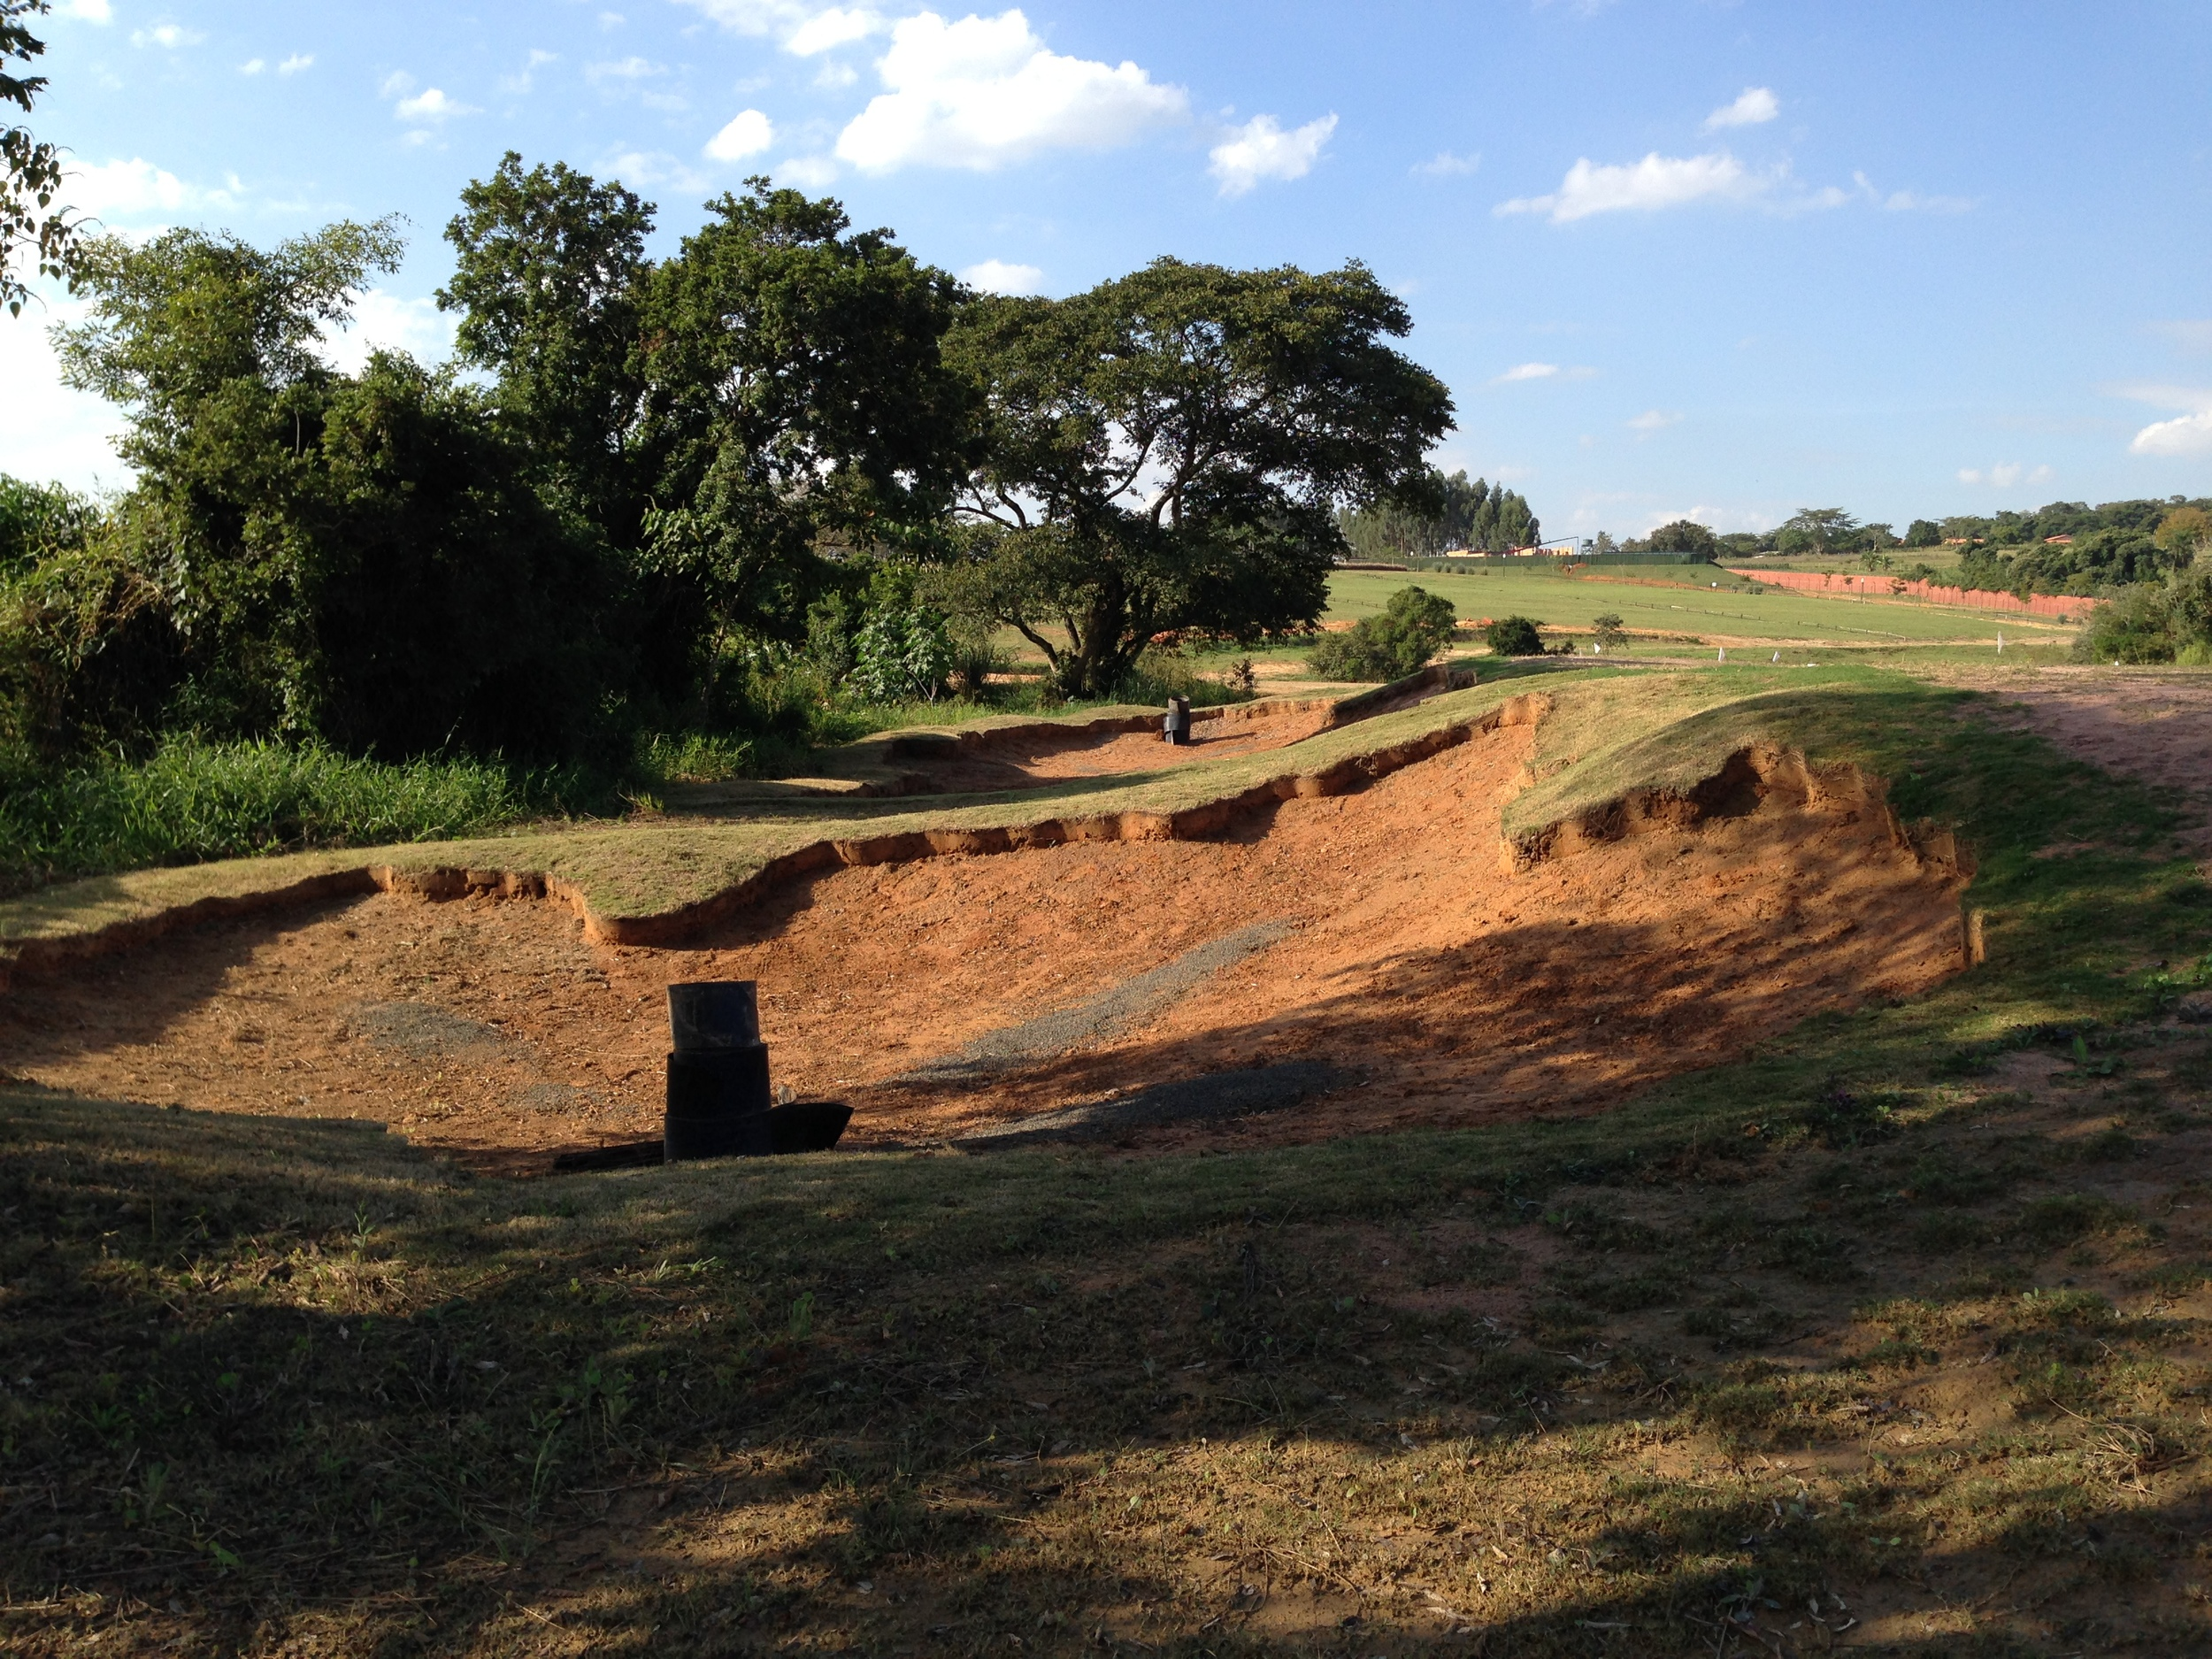 Hole 8 green side just after the plastic storm erosion liner had been pulled.